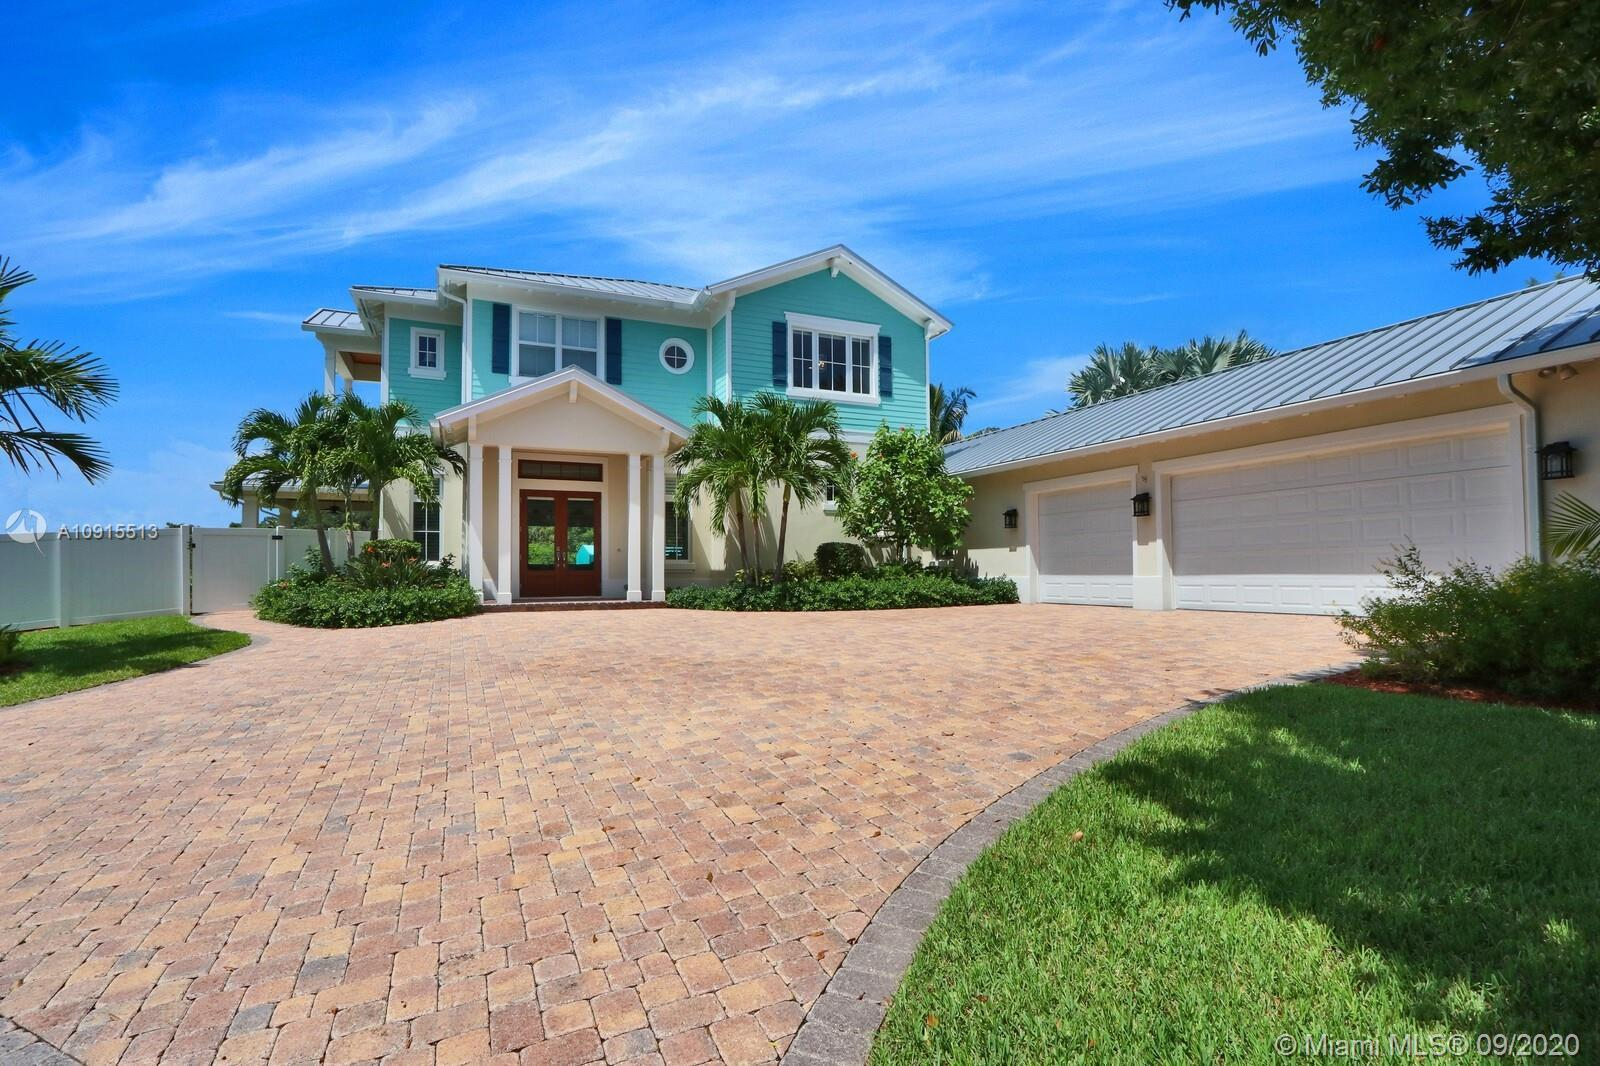 Just 5 minutes to the Jupiter Inlet!  This incredible New Riverfront Home is located on the Loxahatc